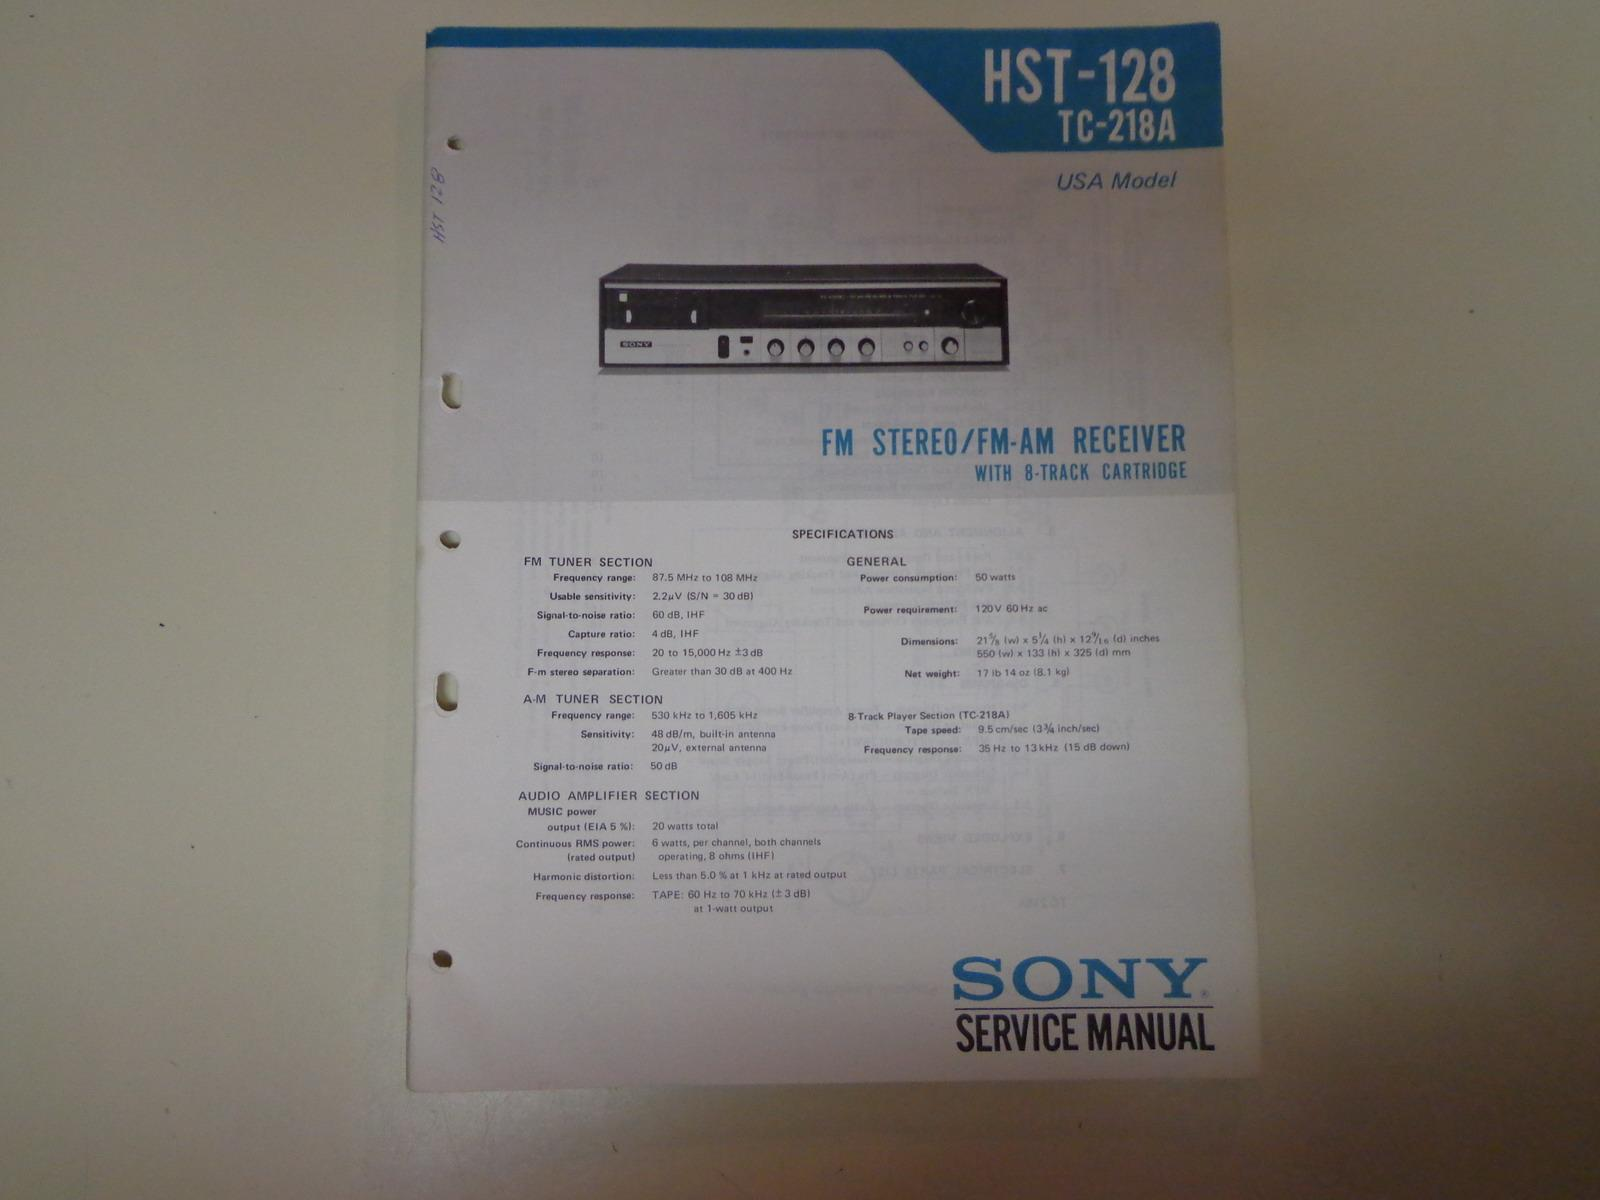 sony hst 128 tc 218a stereo receiver 8 track service manual original rh abebooks com sony str-dh100 stereo receiver manual sony str de197 stereo receiver manual